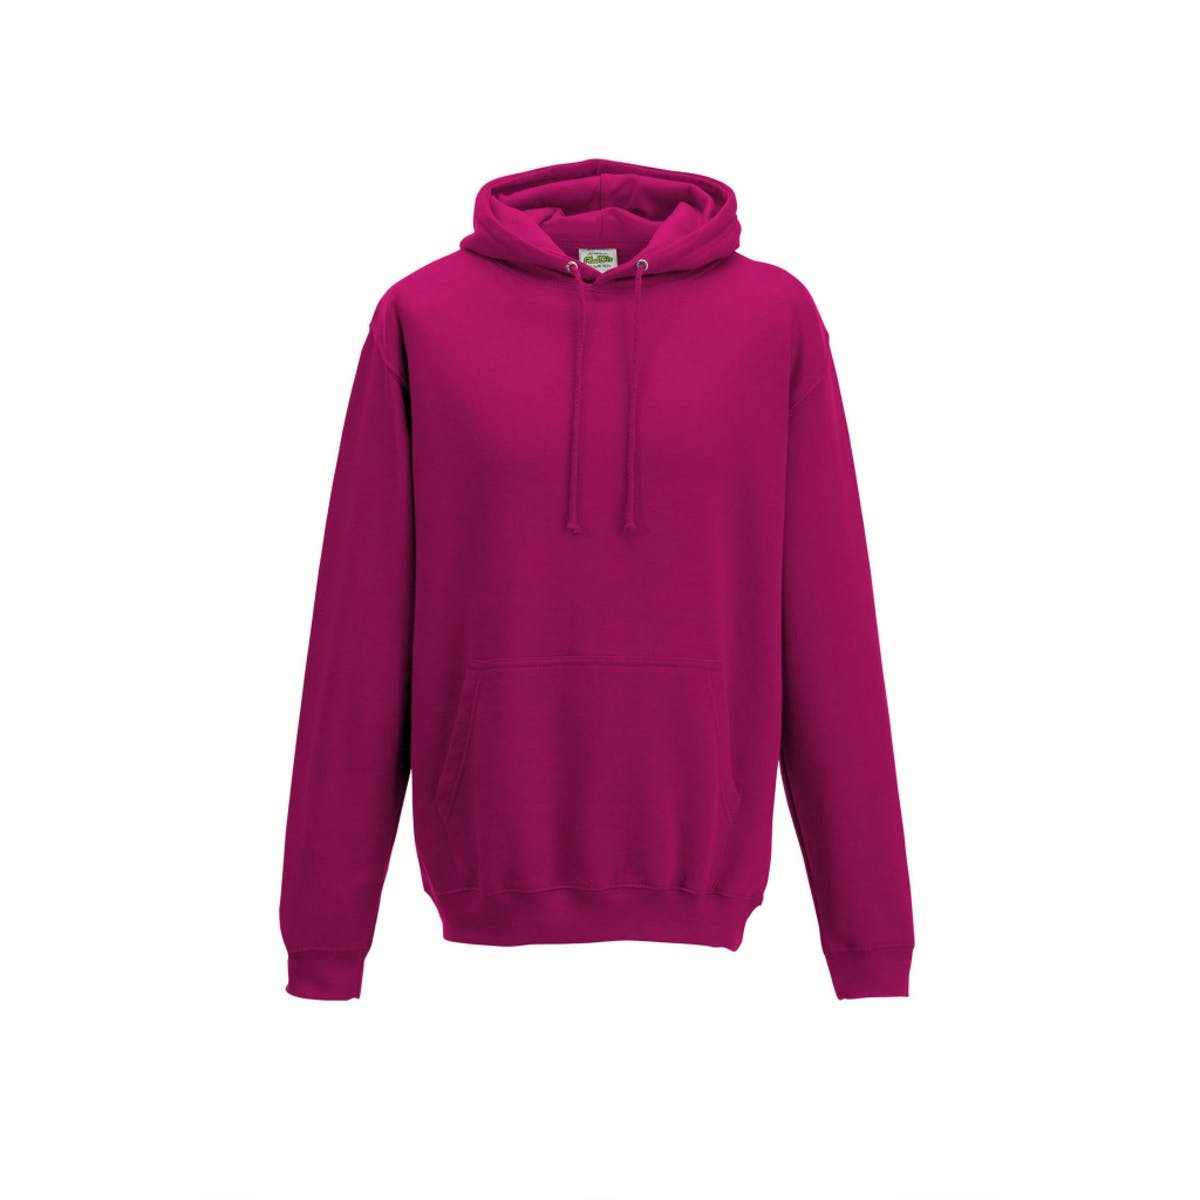 hot pink college hoodies